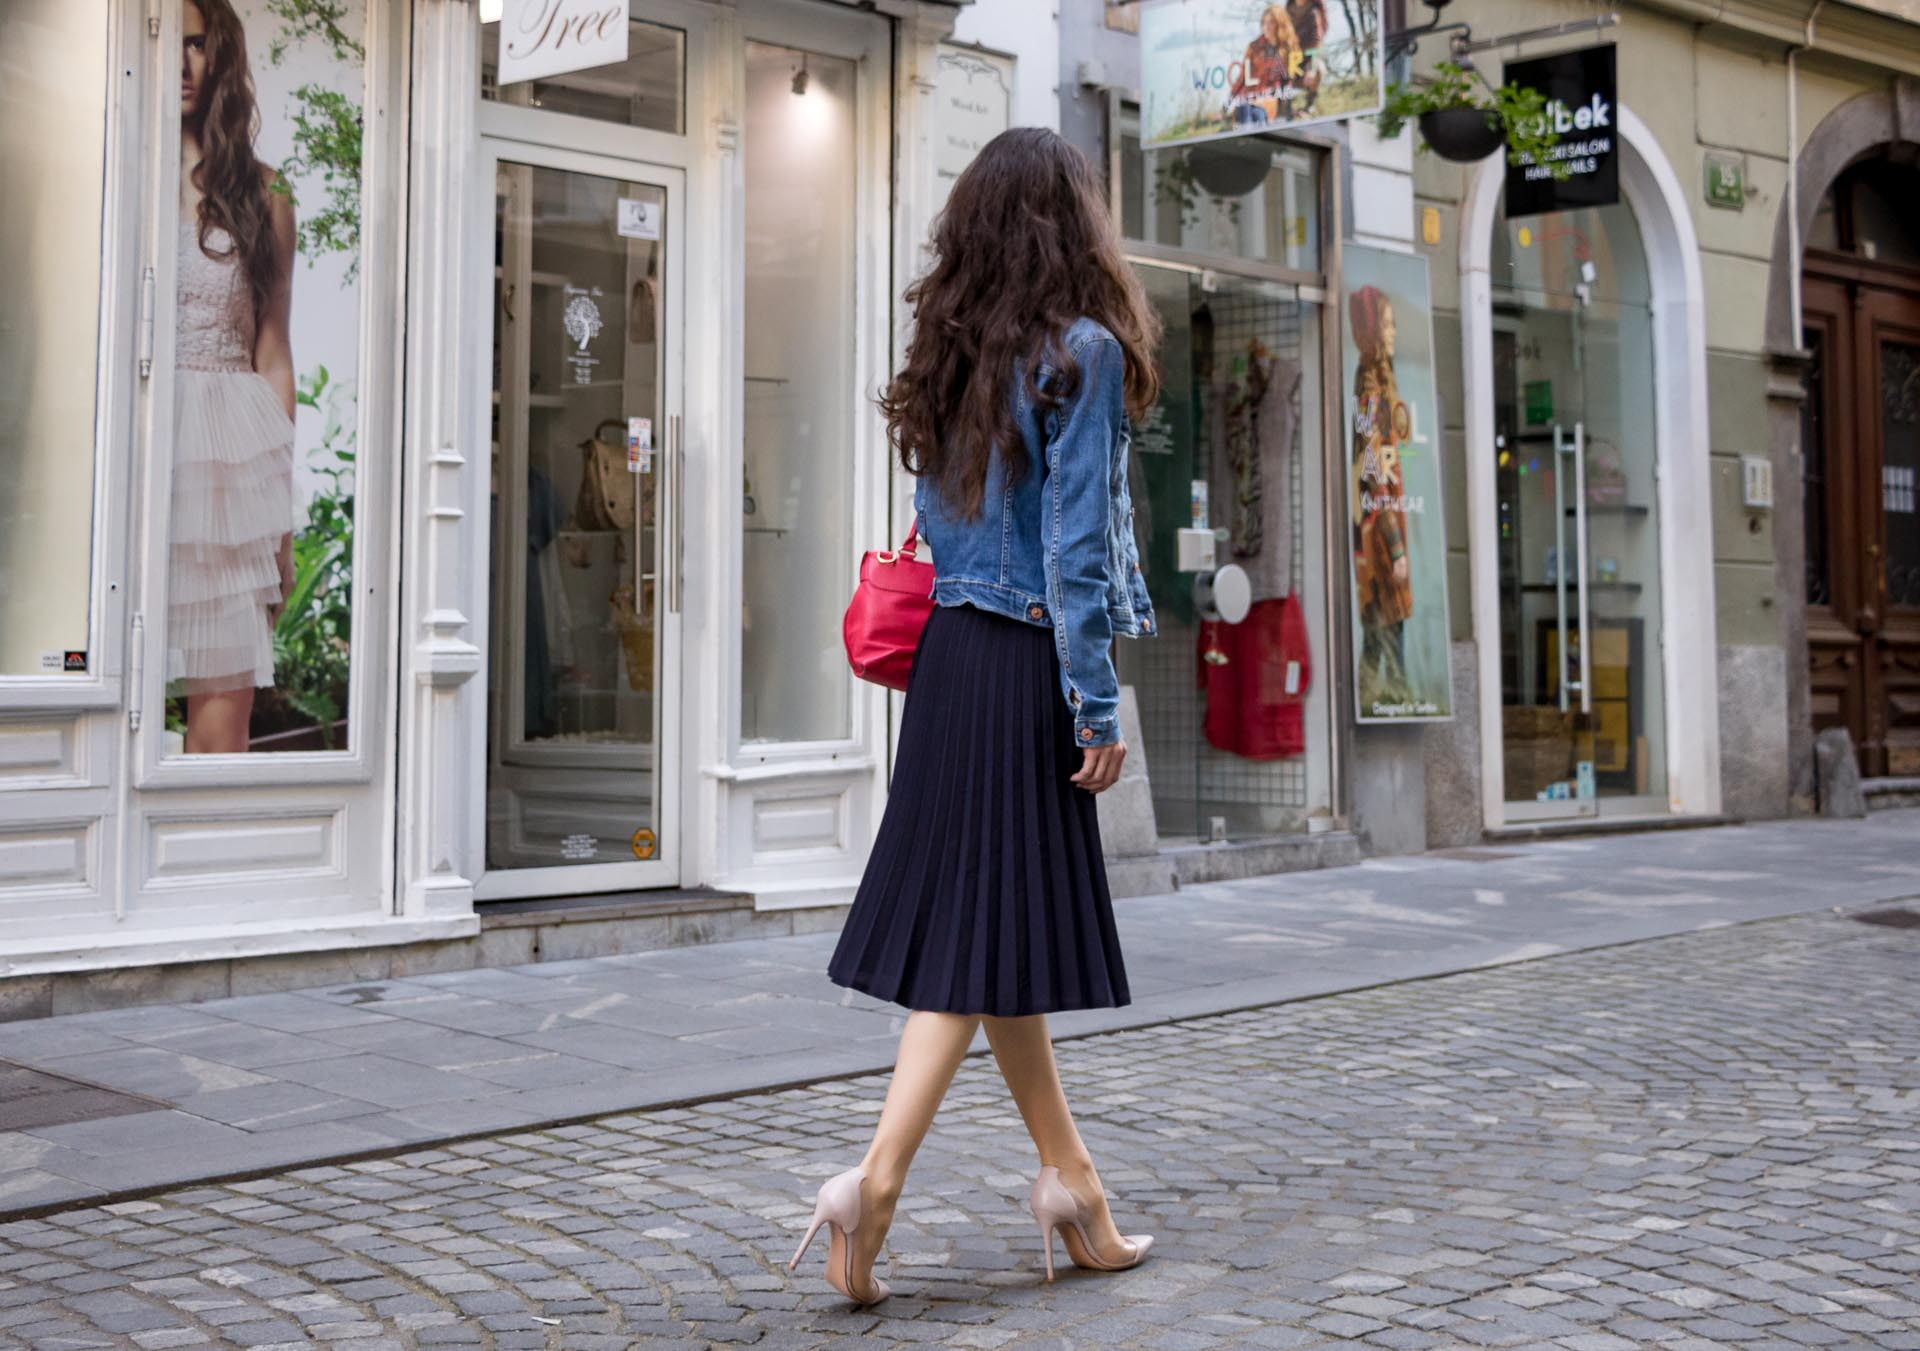 Veronika Lipar Fashion Blogger of Brunette from Wall Street wearing H&M denim jacket, floral blouse, midi pleated skirt, Gianvito Rossi plexi pumps, pink top handle bag while walking on the street in Ljubljana